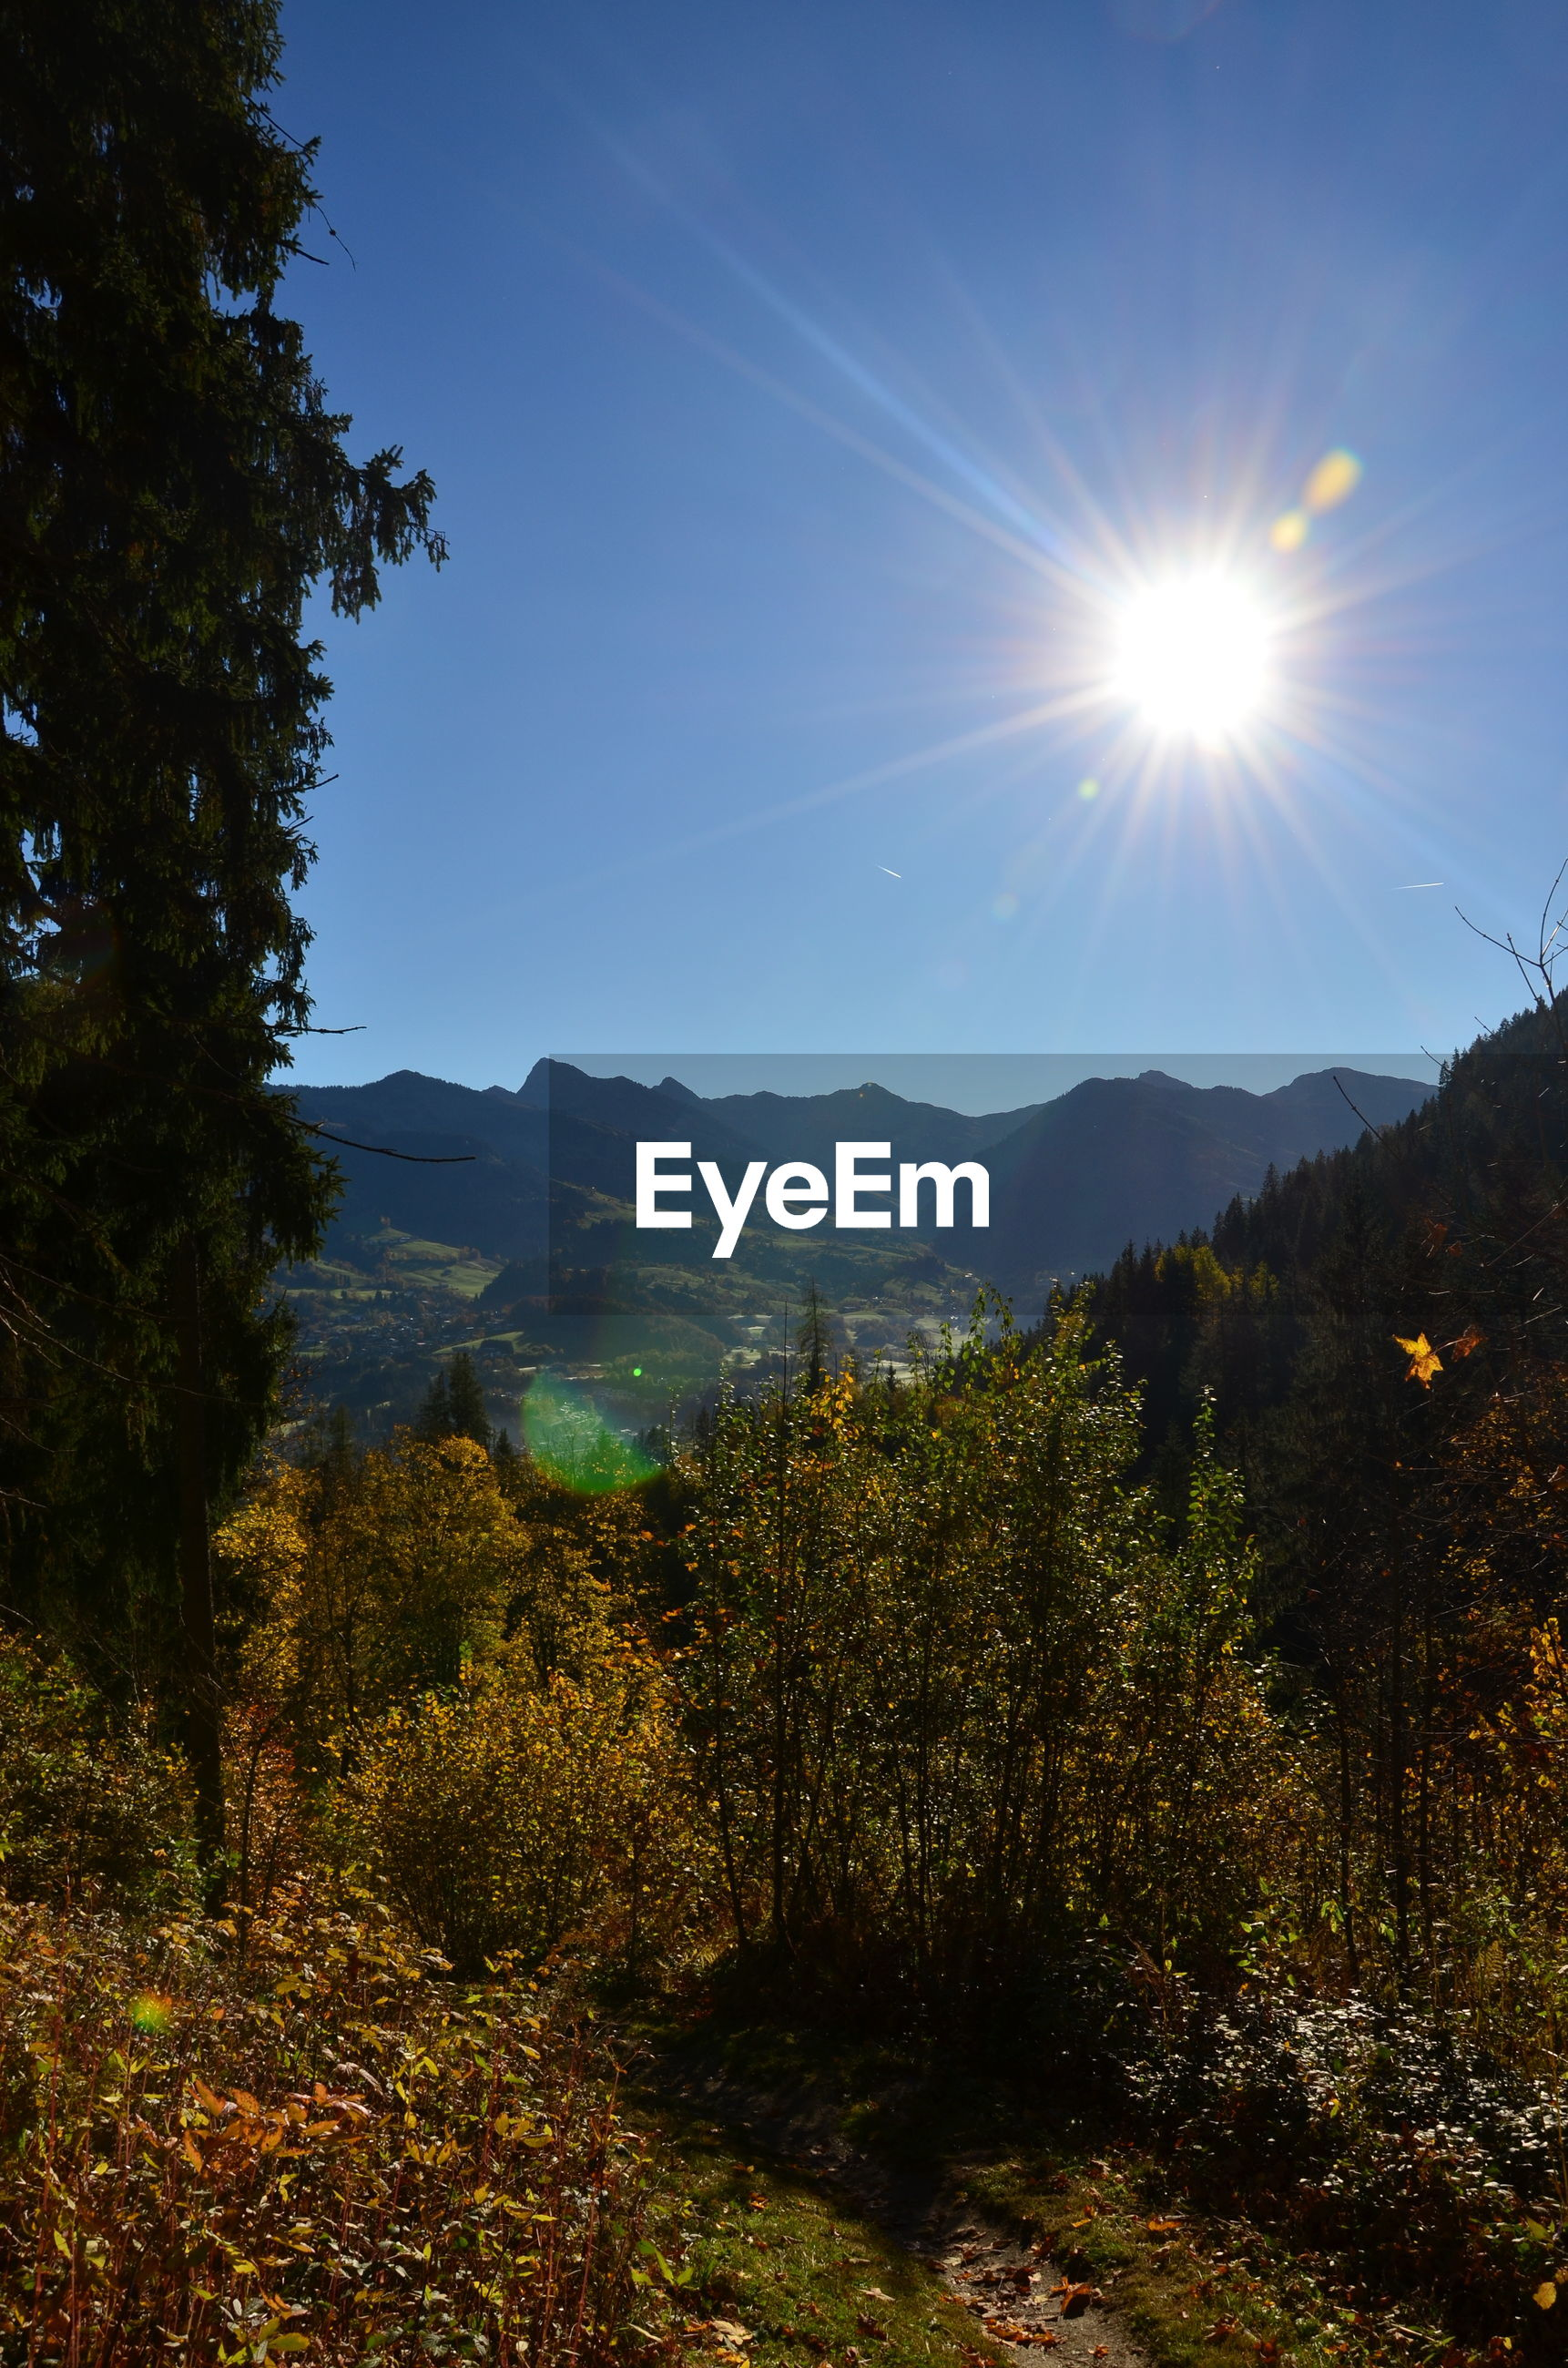 SCENIC VIEW OF FOREST AGAINST MOUNTAINS